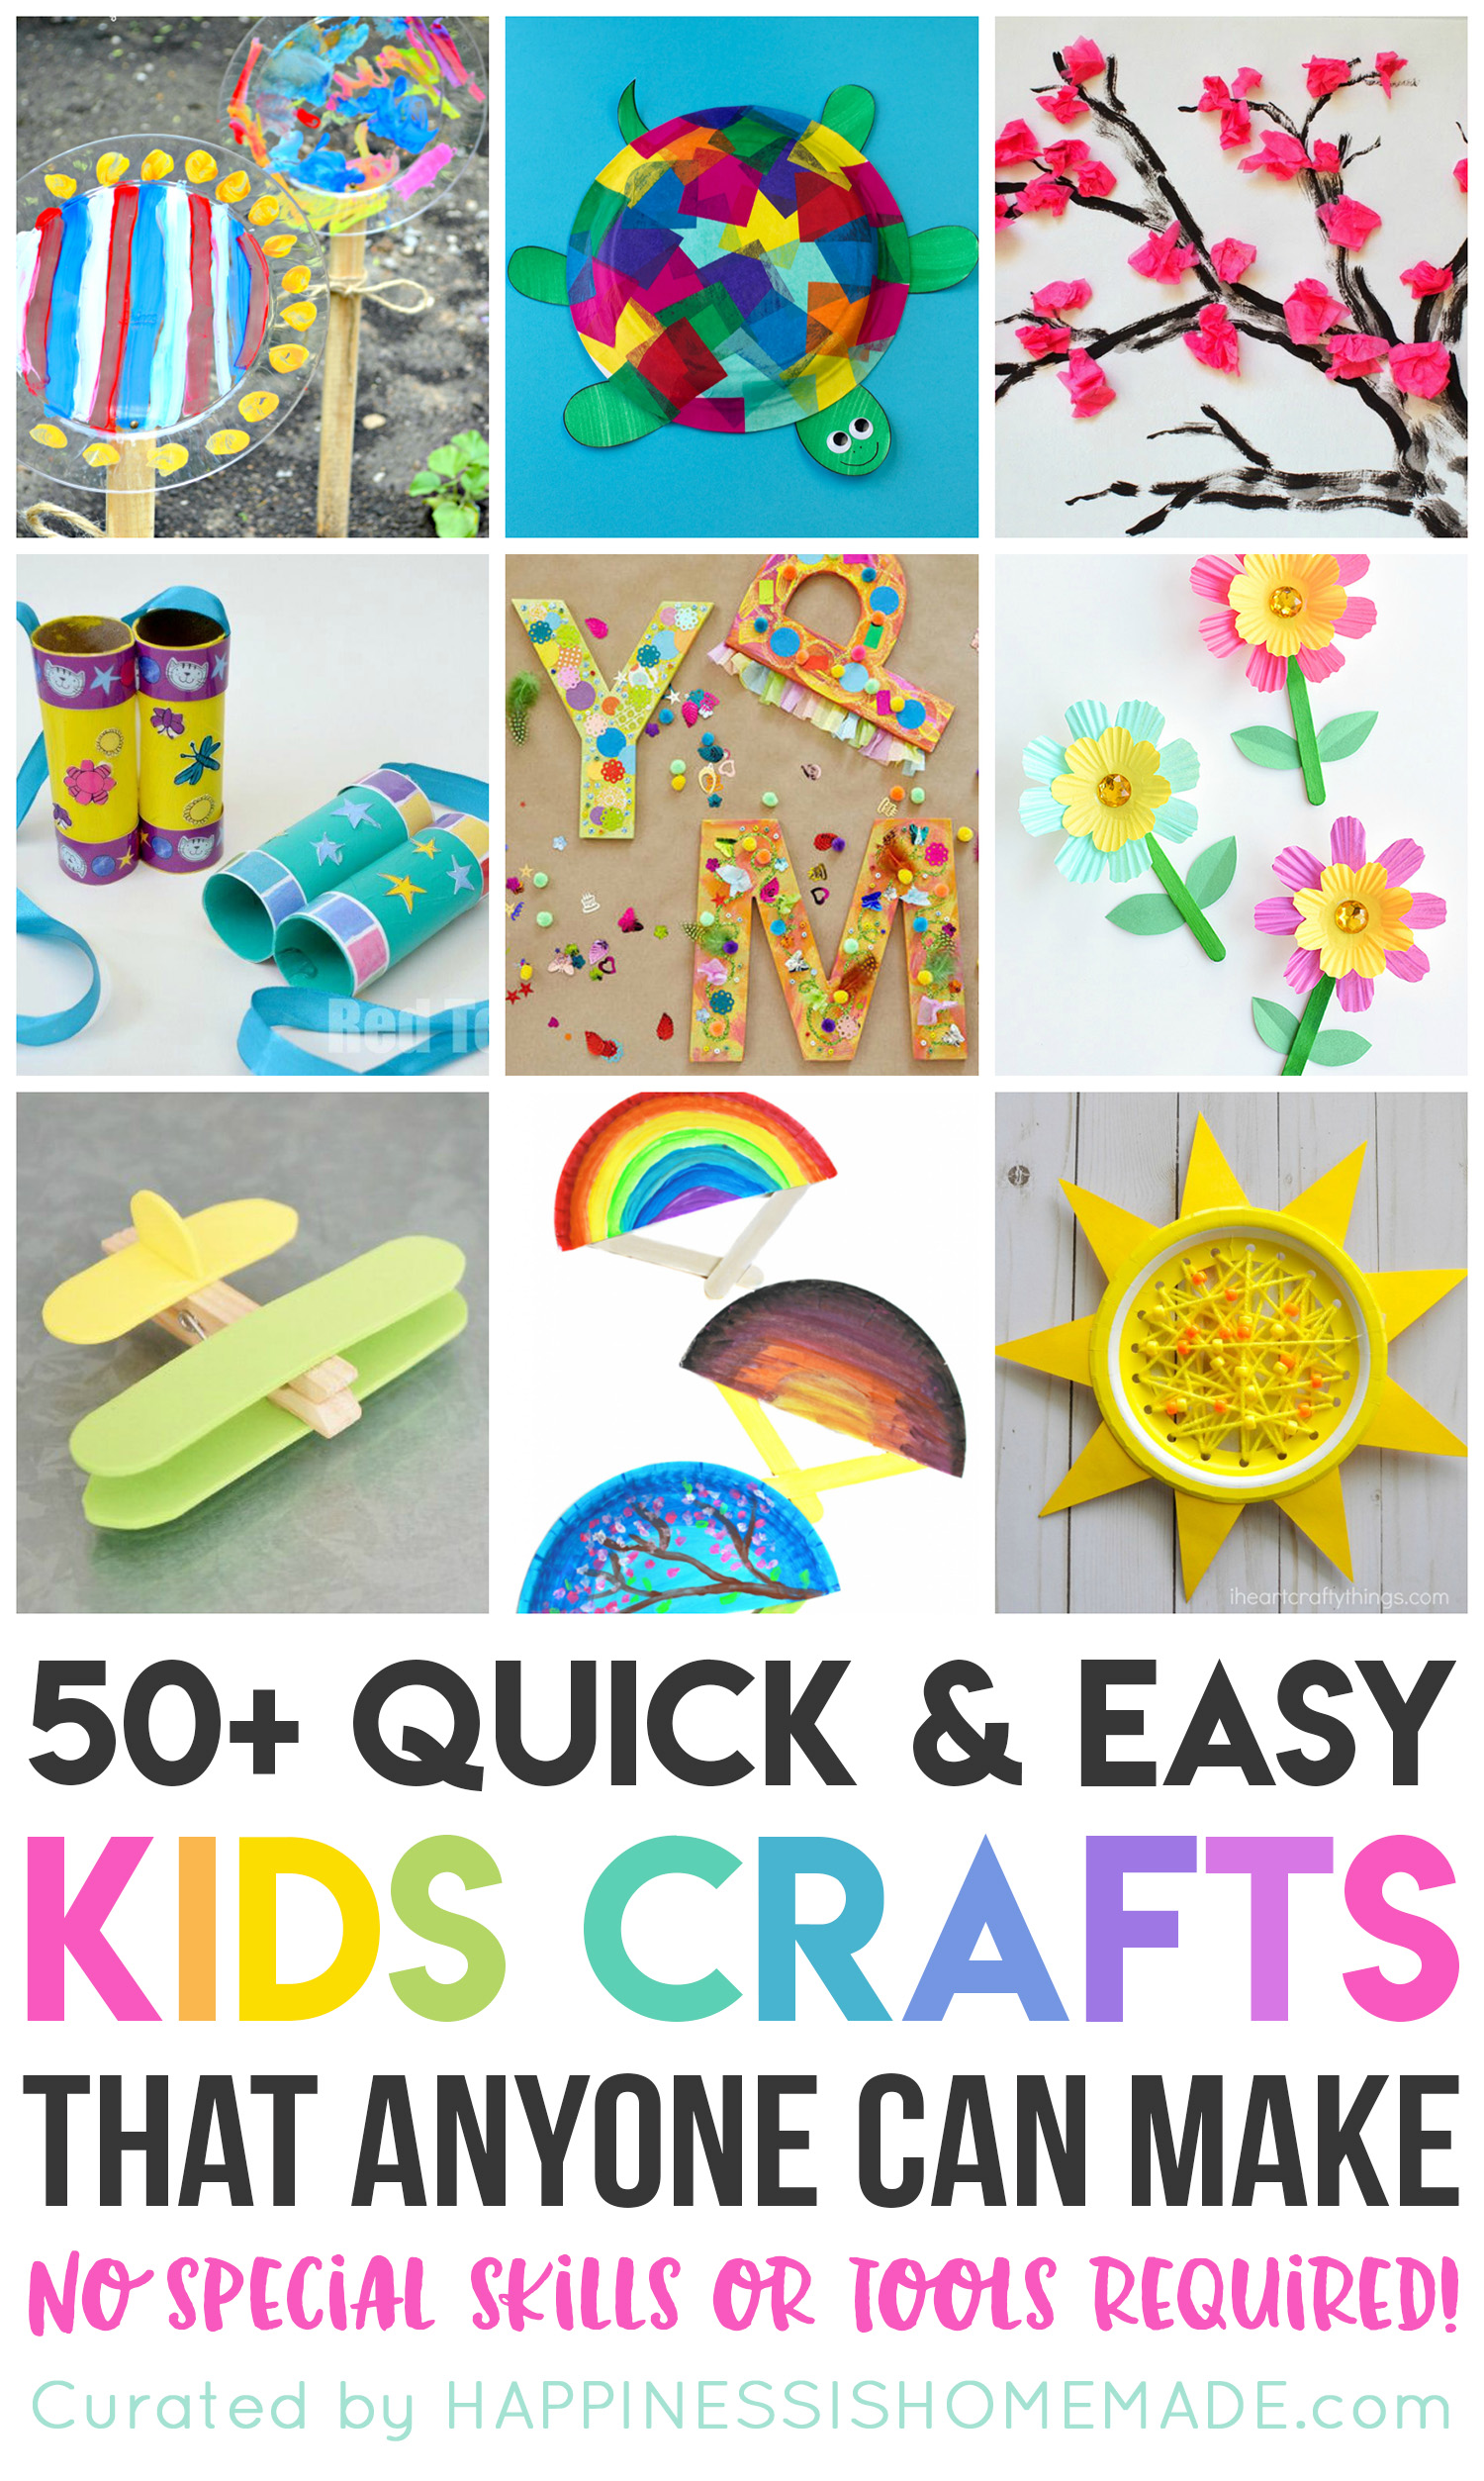 These 50+ quick and easy kids crafts can be made in under 30 minutes using items that you probably already have around the house! No special tools or skills are required, so ANYONE can make these cute crafts for kids! Great fun for the entire family!